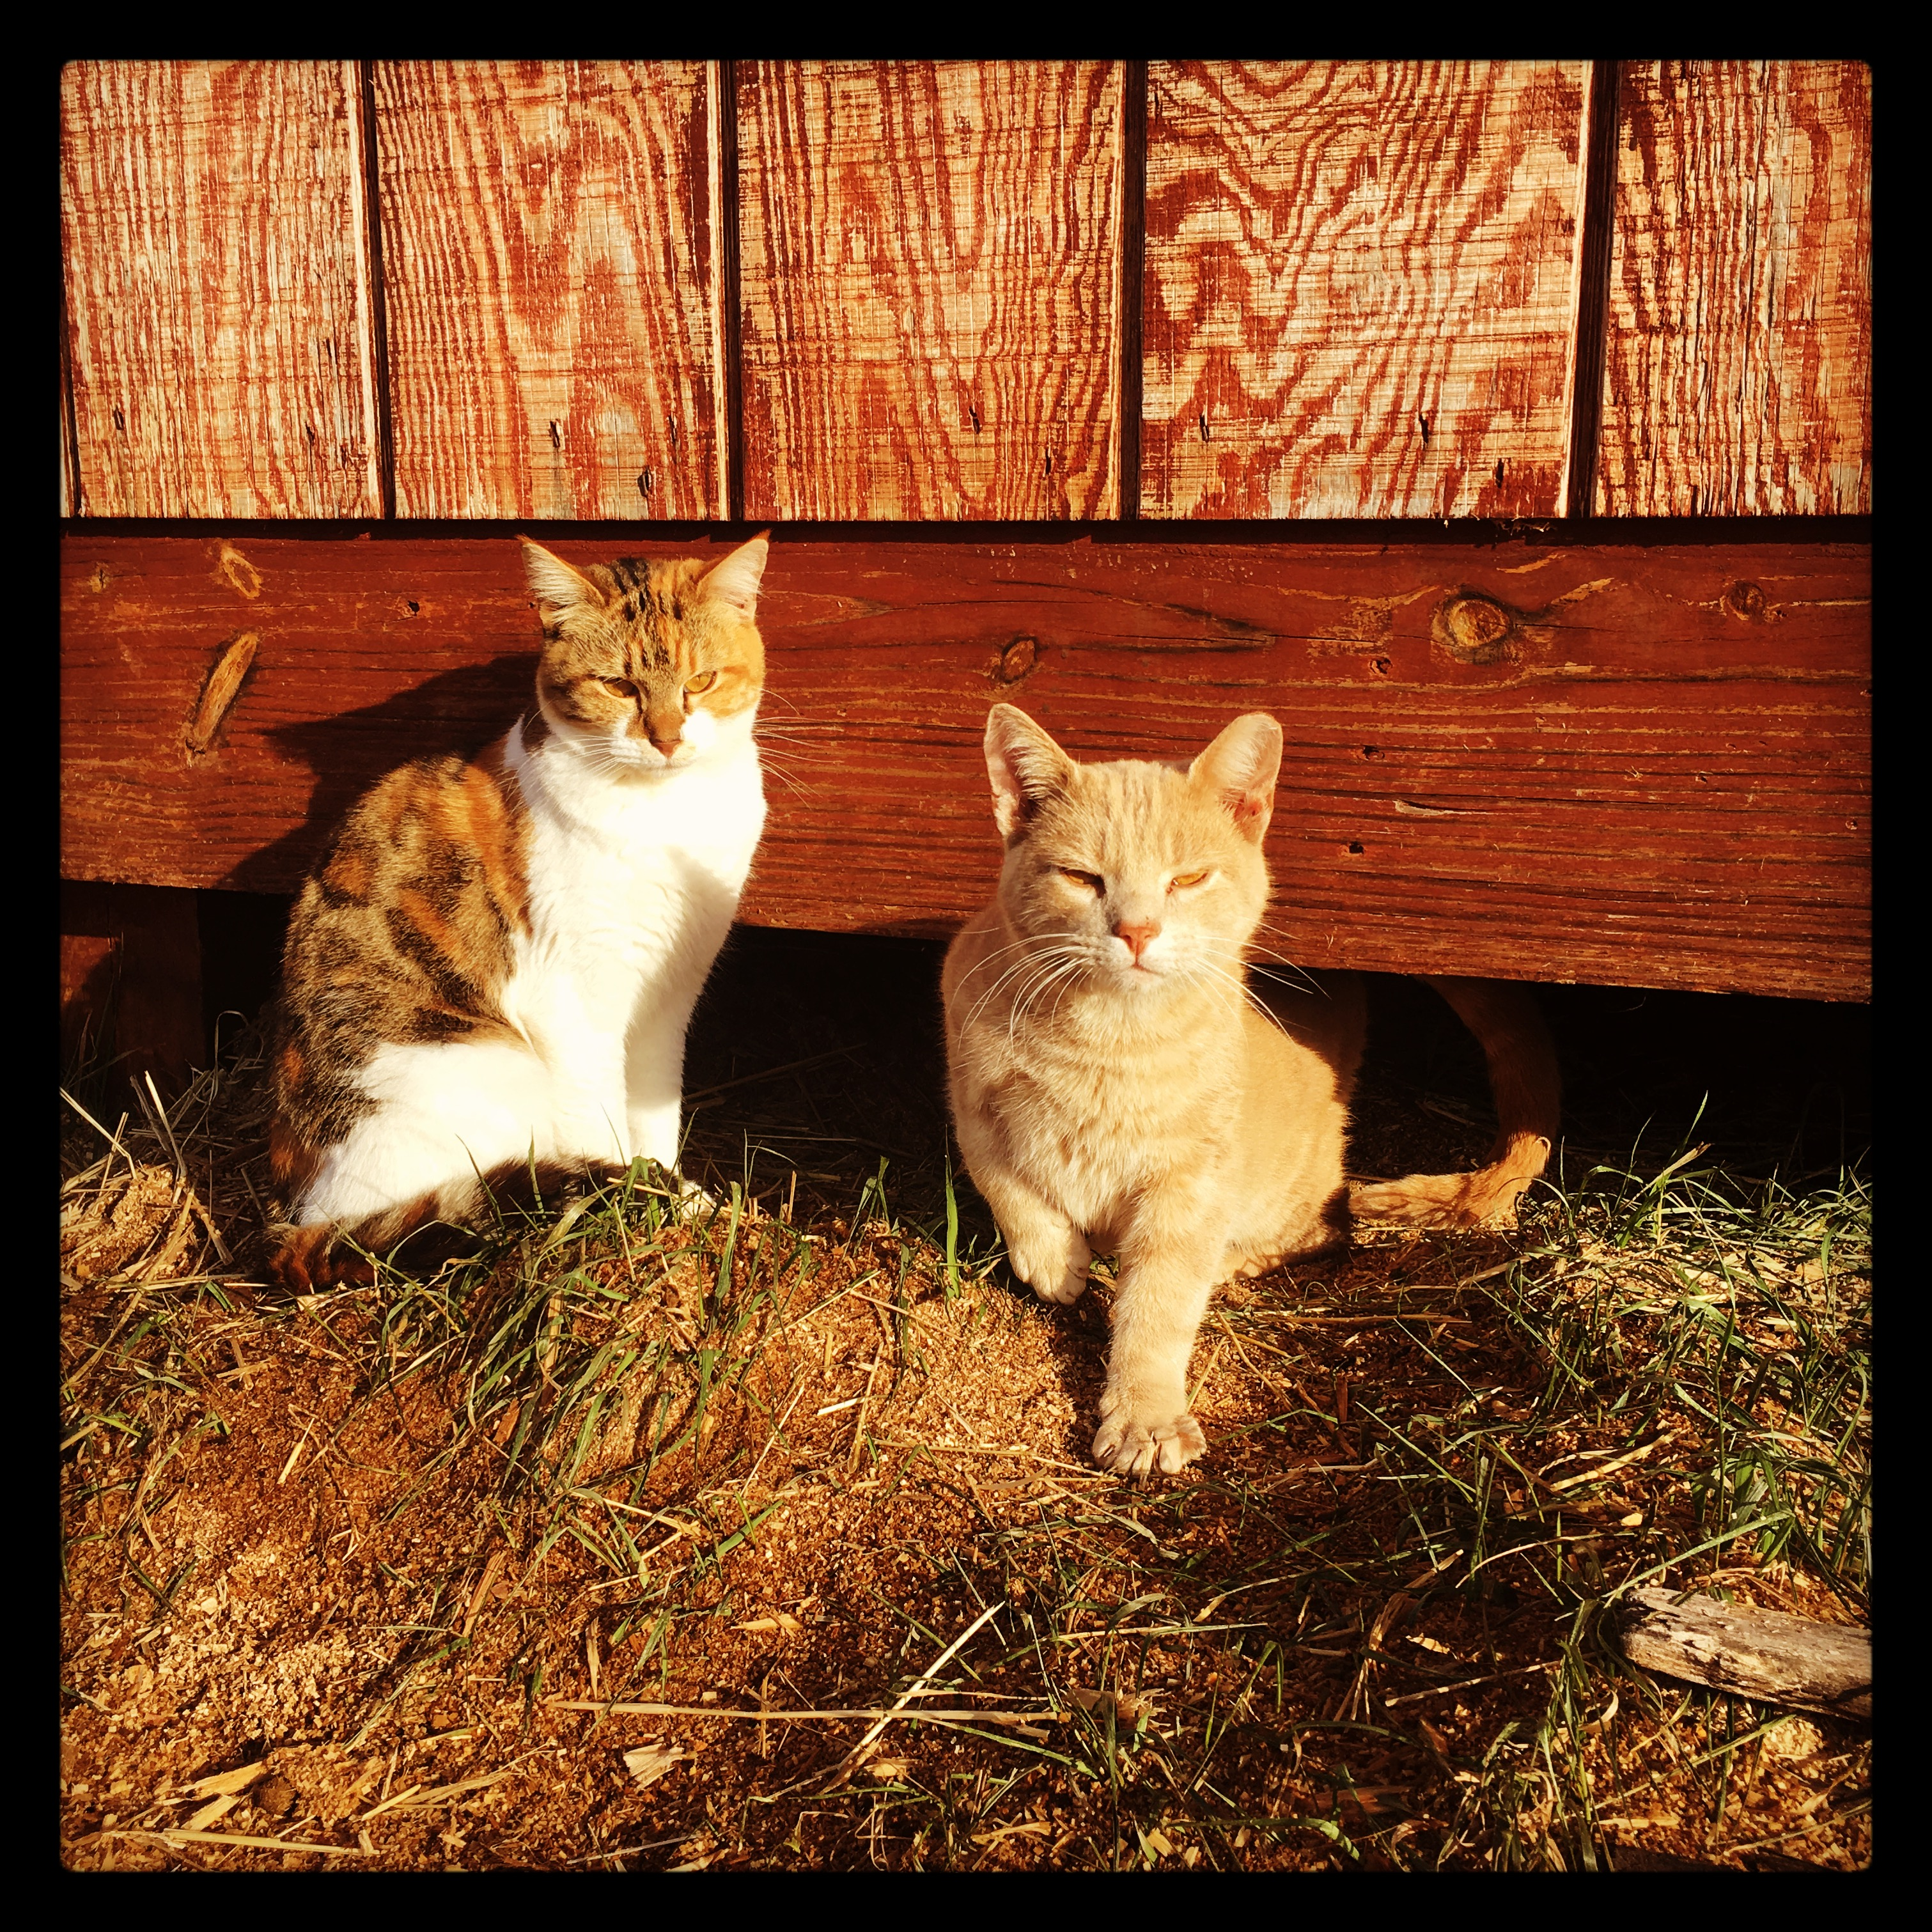 Two of SEC's barn kitties.